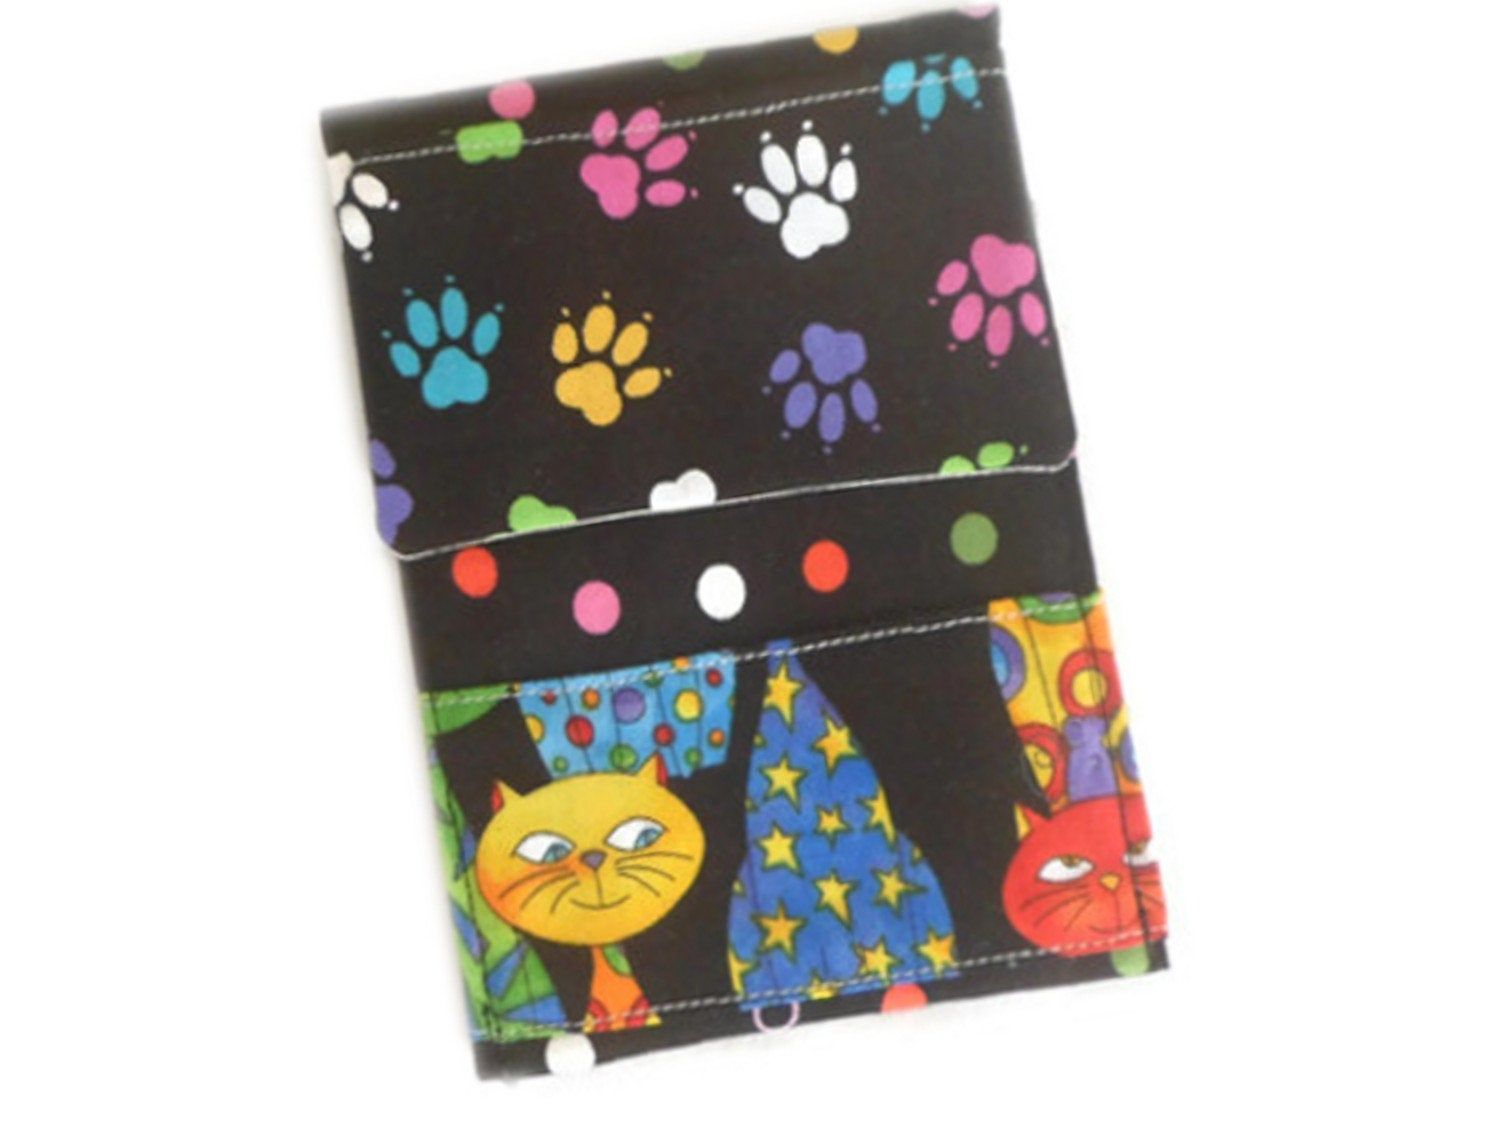 Small Bag Fabric Printed Cats For Gift Wrapping Mini Pouch Ecological Storage Pouch For Travel Pouch For Handbag Pochette Tissus Emballer Cadeau Petit Sac